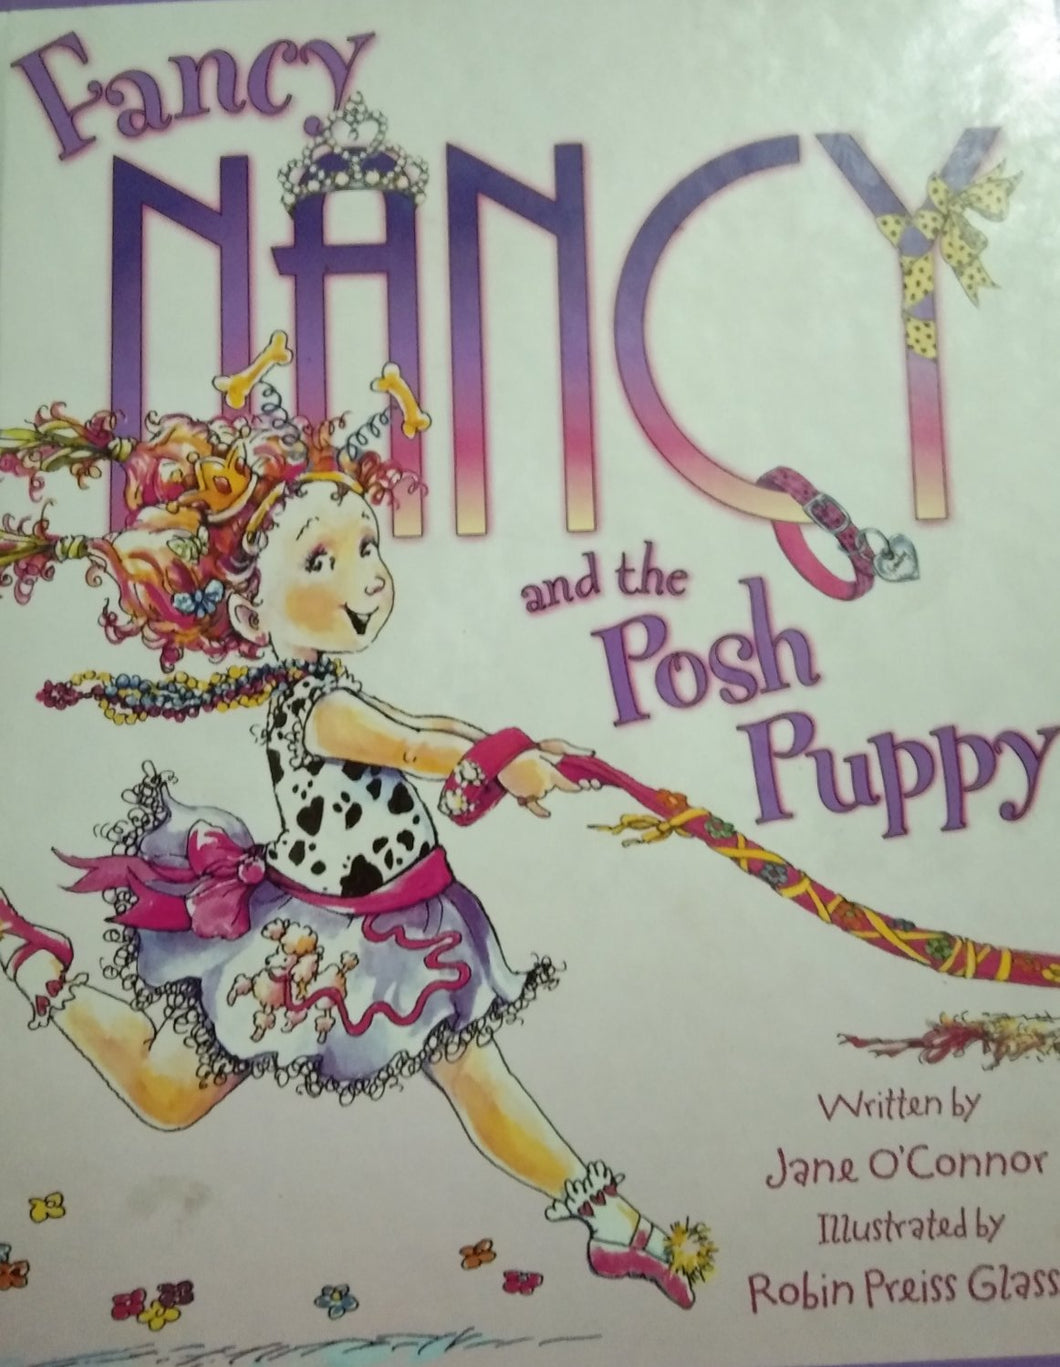 Francie nancy and the posh puppy by jane oconnor